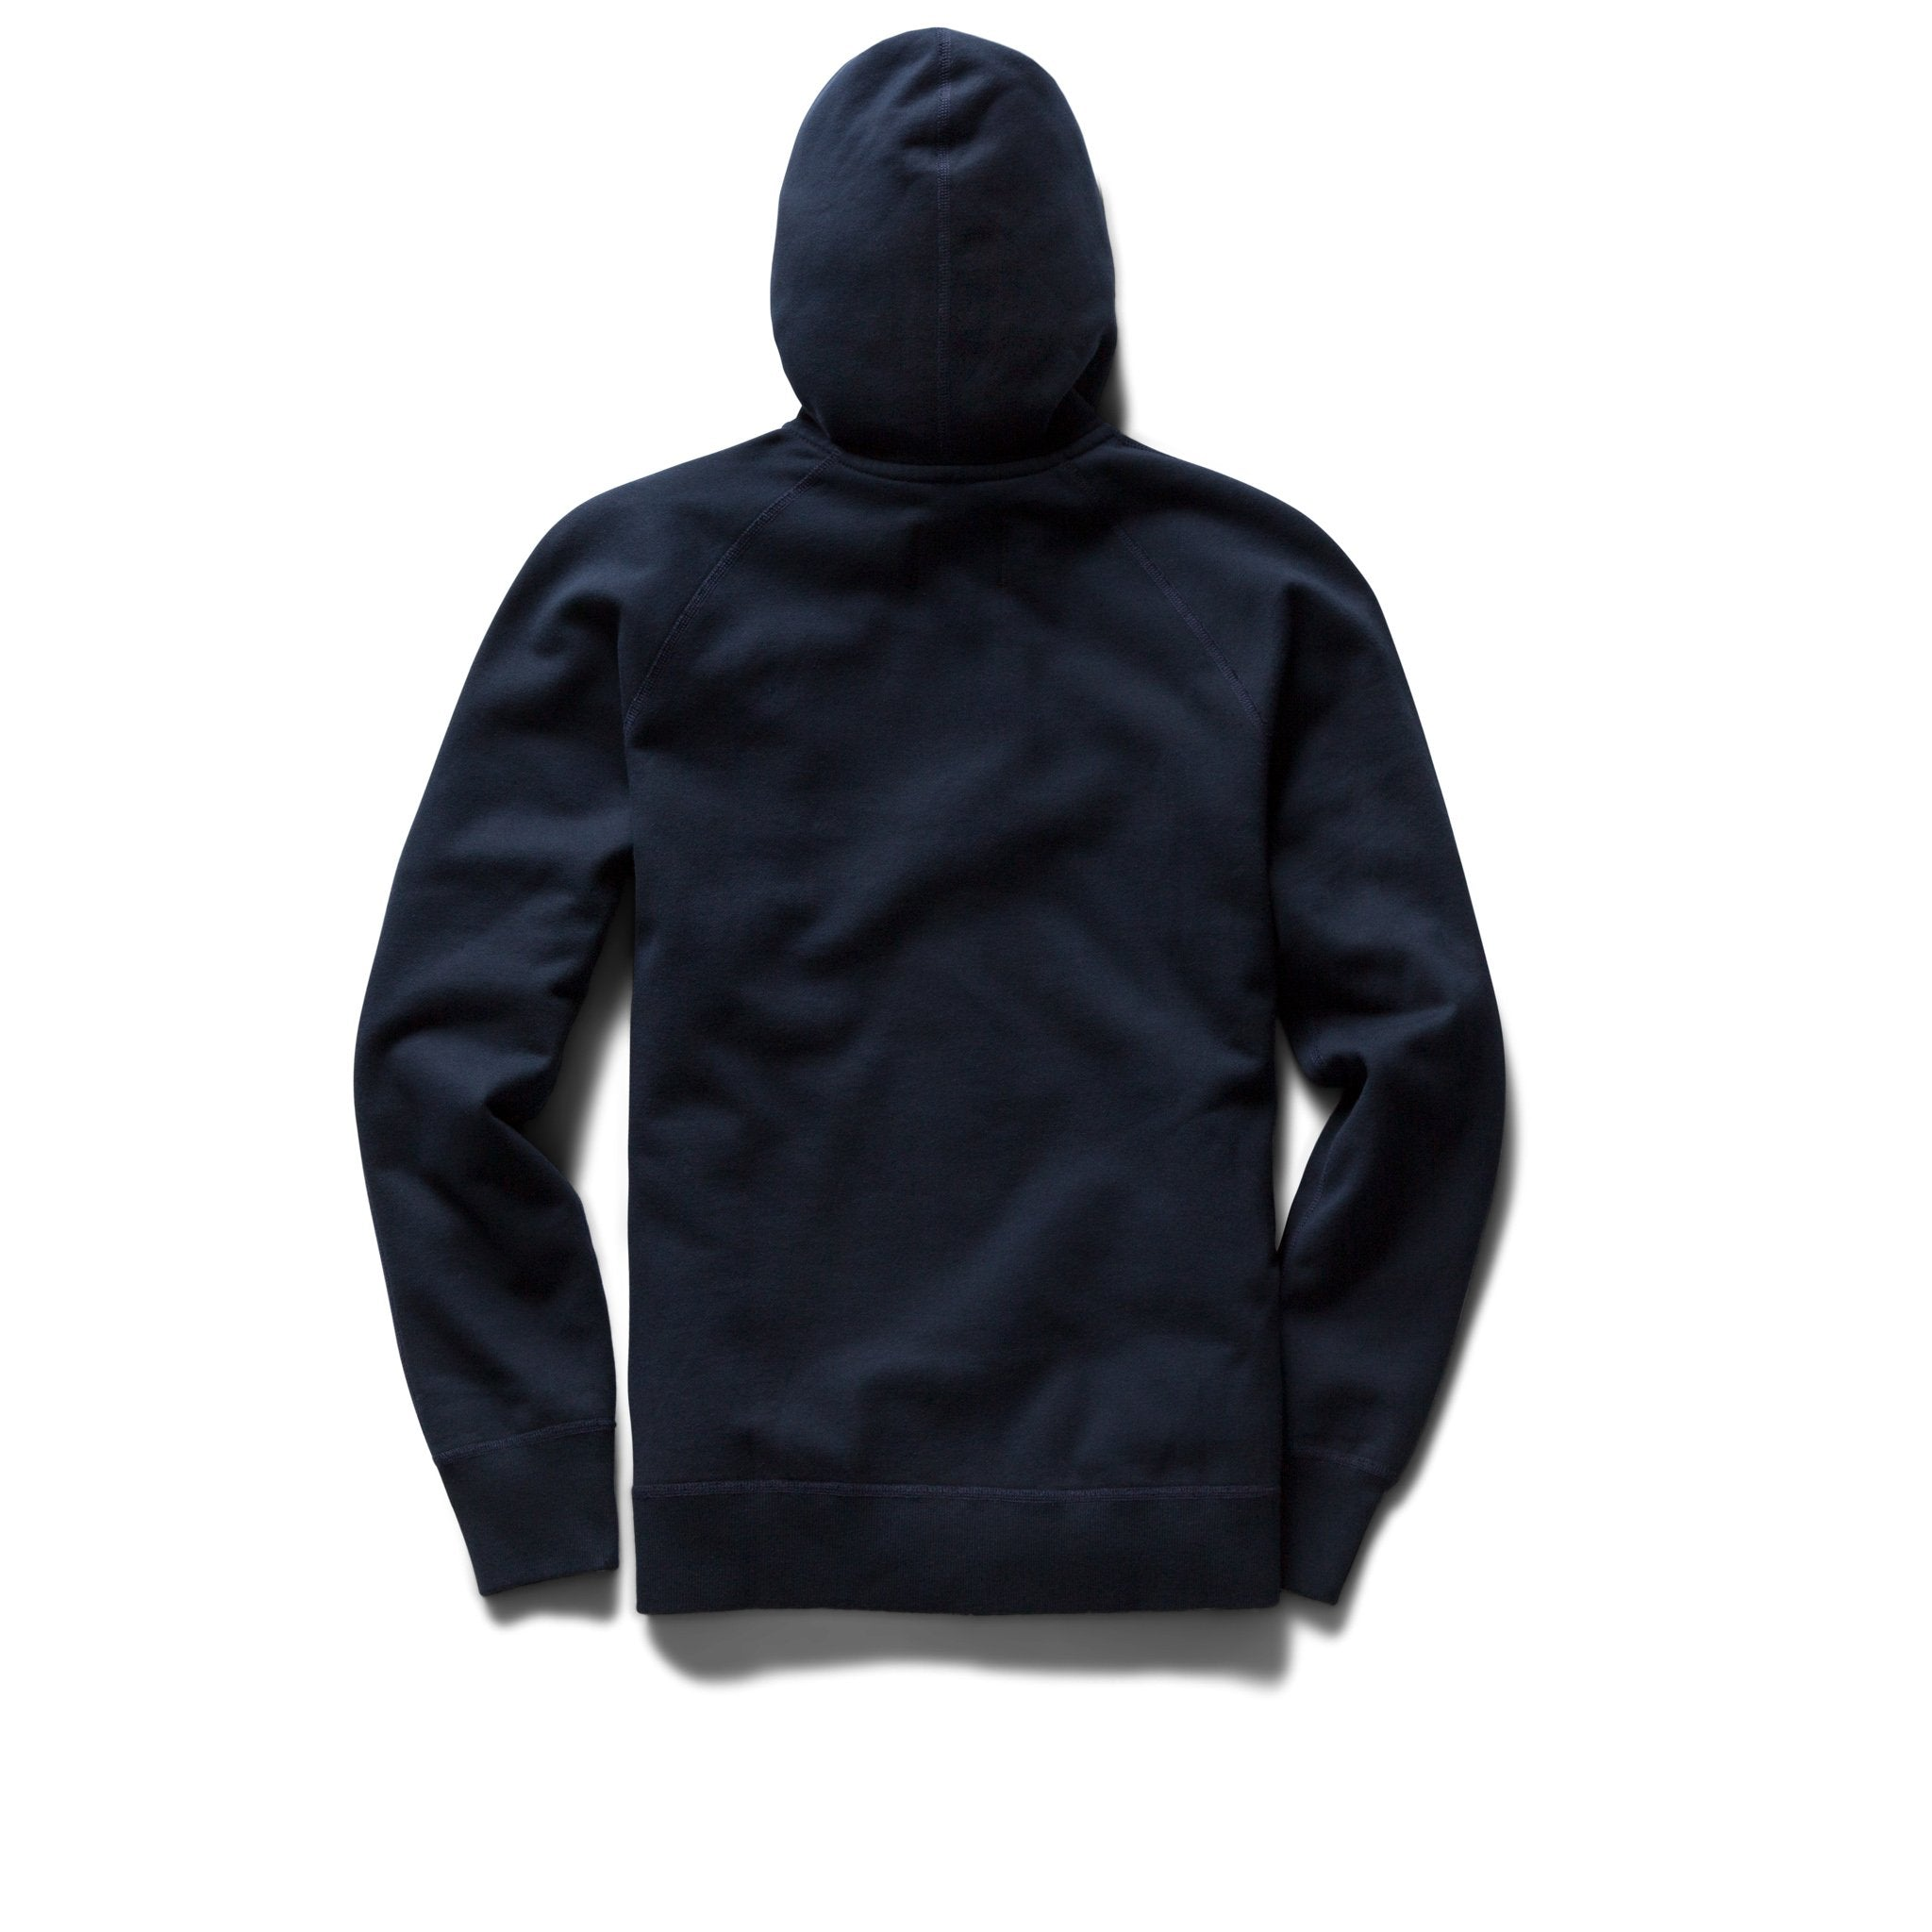 REIGNING CHAMP M'S HOODIES PULLOVER HOODIE - MIDWEIGHT TERRY